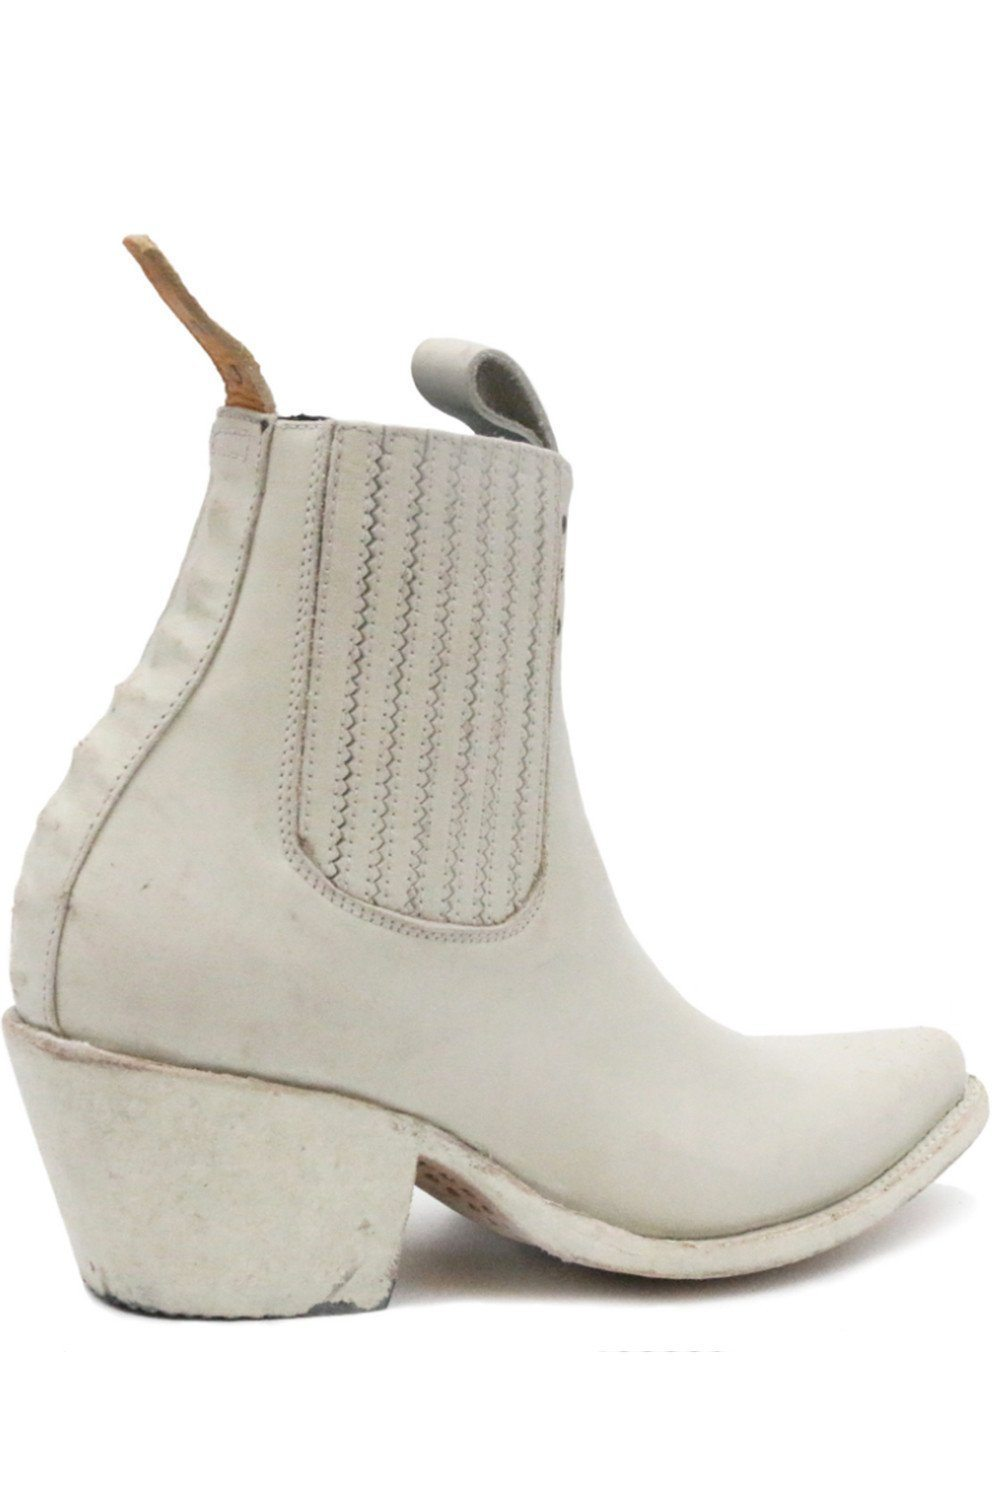 PSKaufman Leather Chelsea Boots in Bone White, shoes, pskaufman, BACKBITE